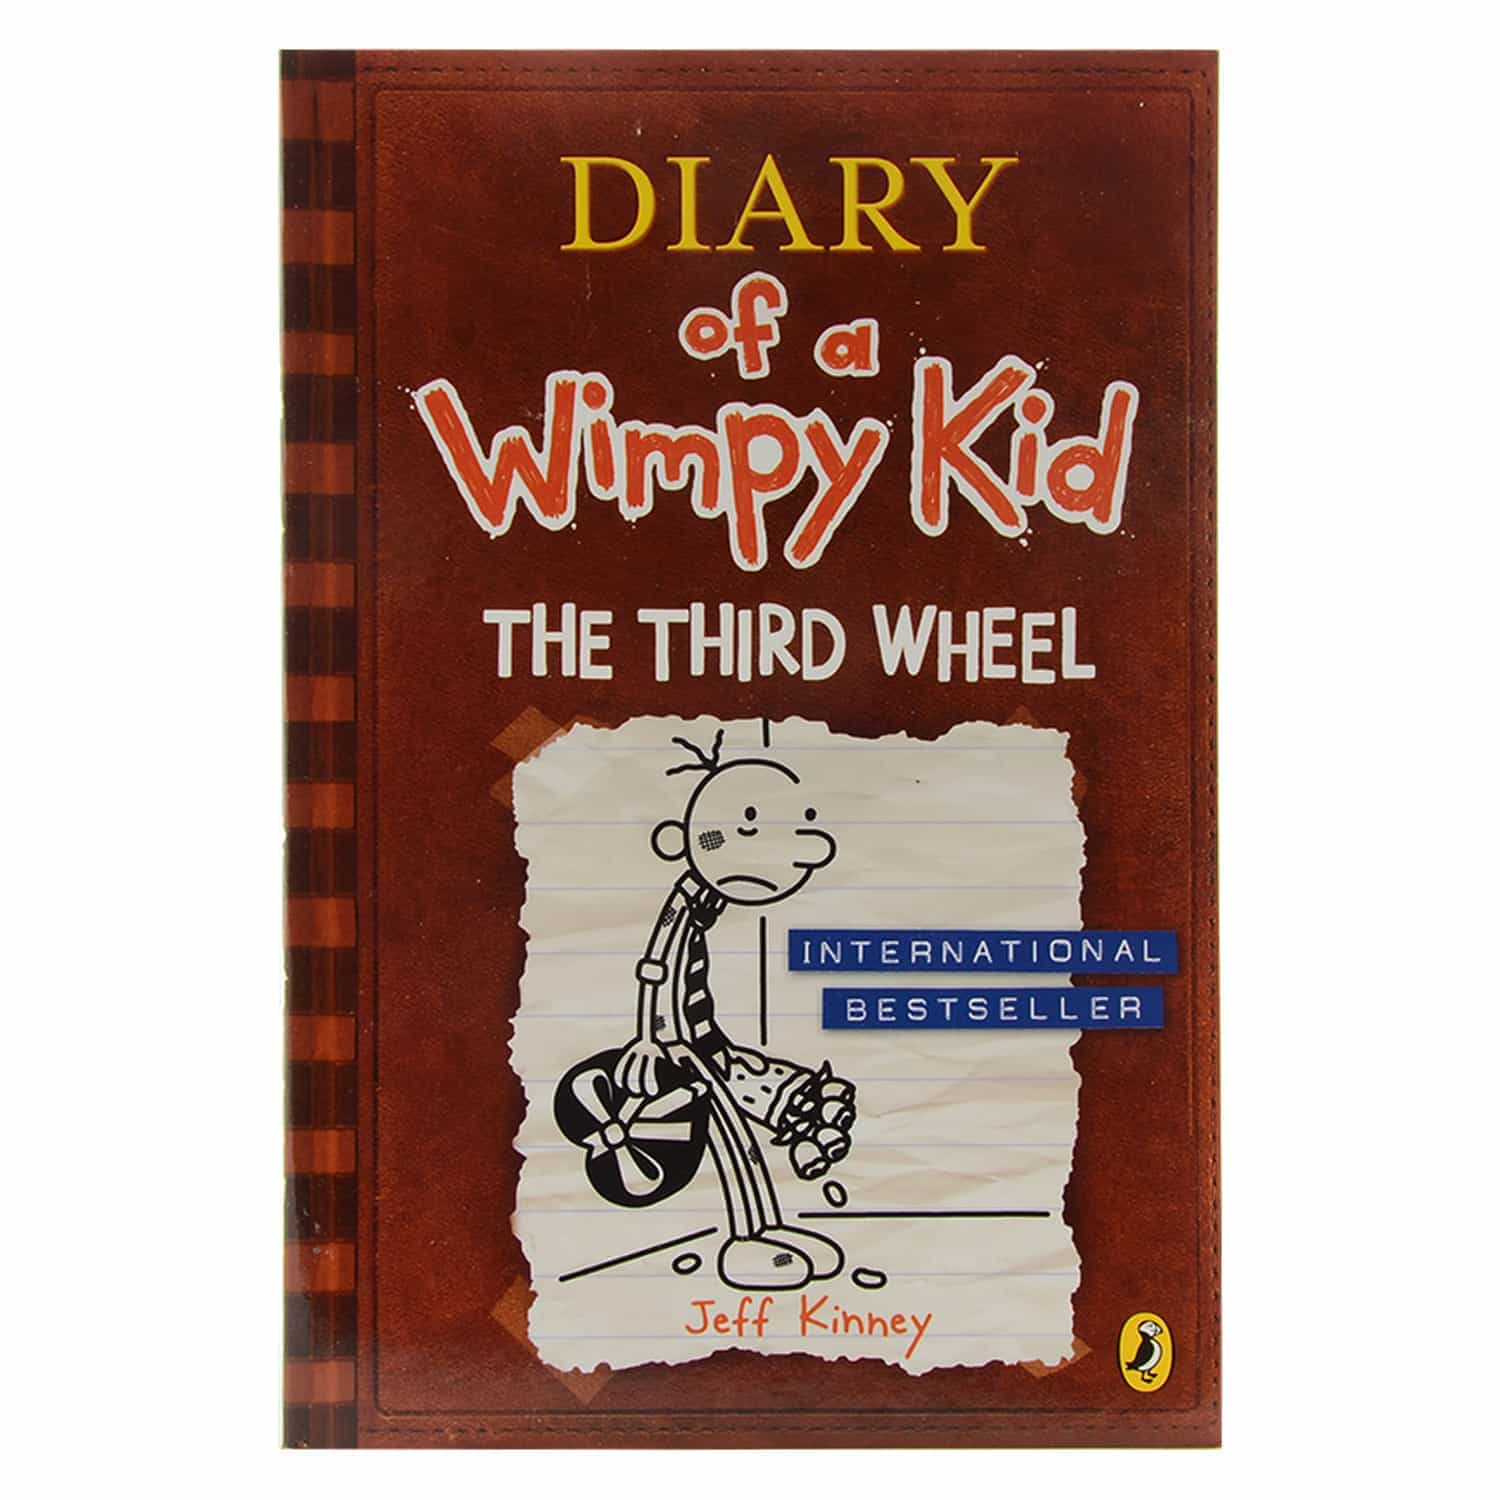 Diary of a Wimpy Kid Series- The Third Wheel